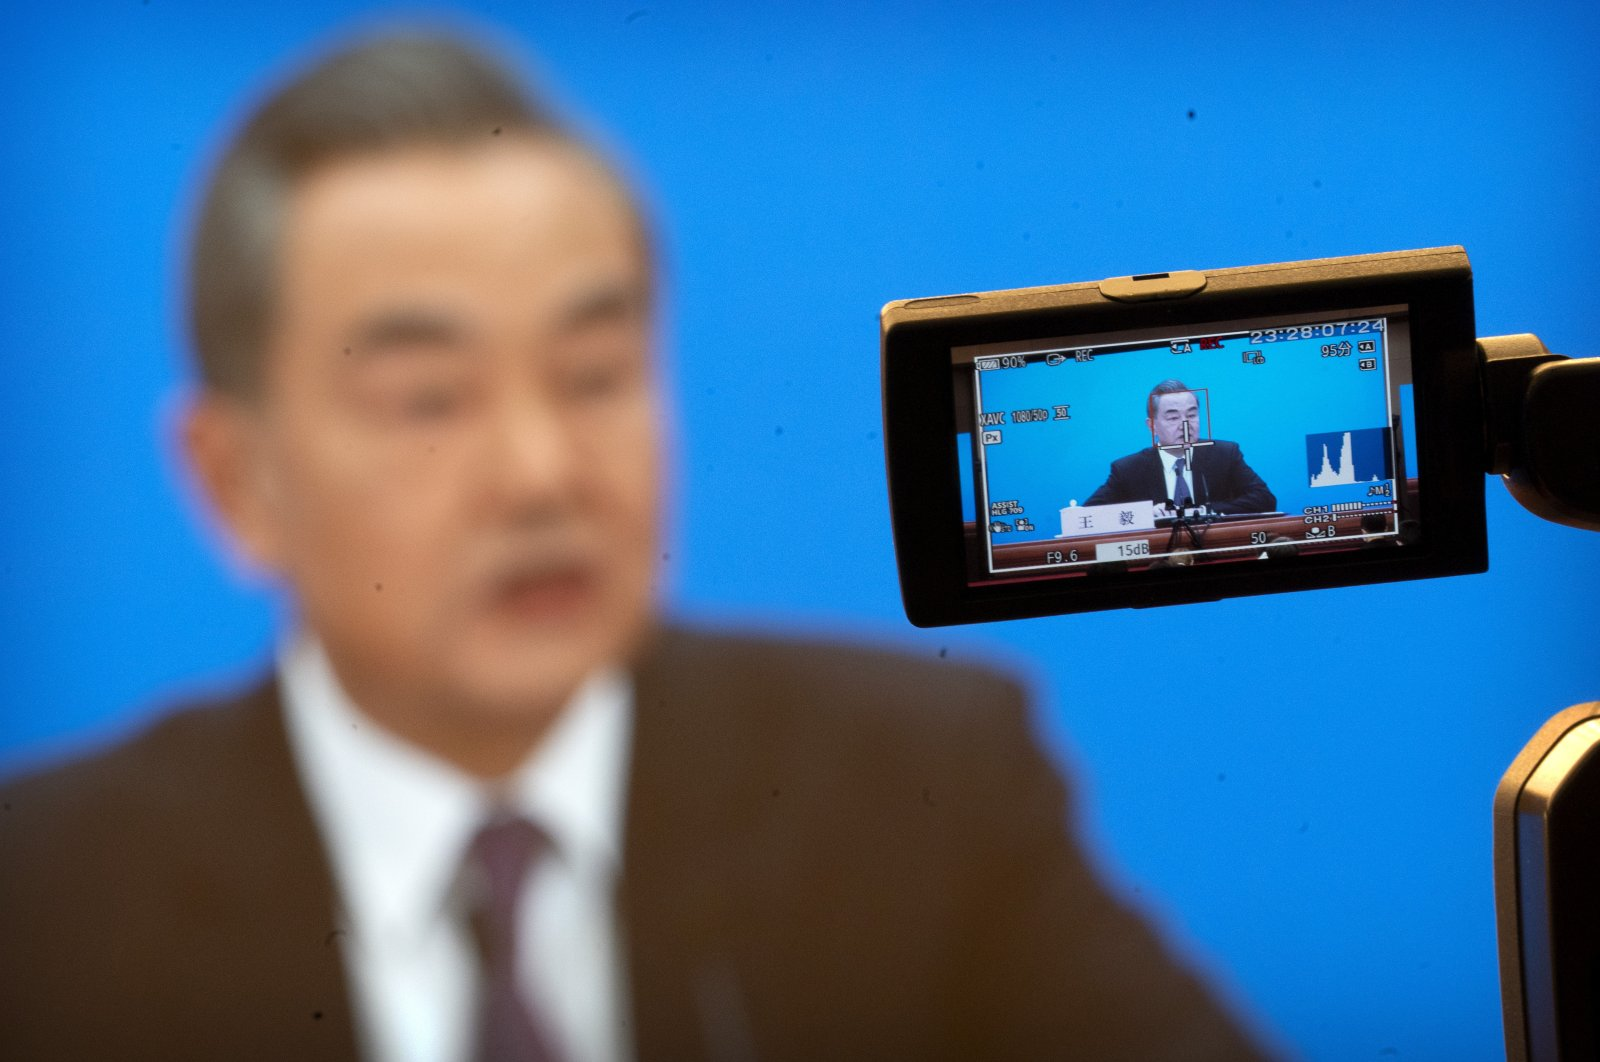 Chinese Foreign Minister Wang Yi is captured on a video camera's screen as he speaks during a remote video press conference held on the sidelines of the annual meeting of China's National People's Congress (NPC) in Beijing, March 7, 2021. (AP Photo)